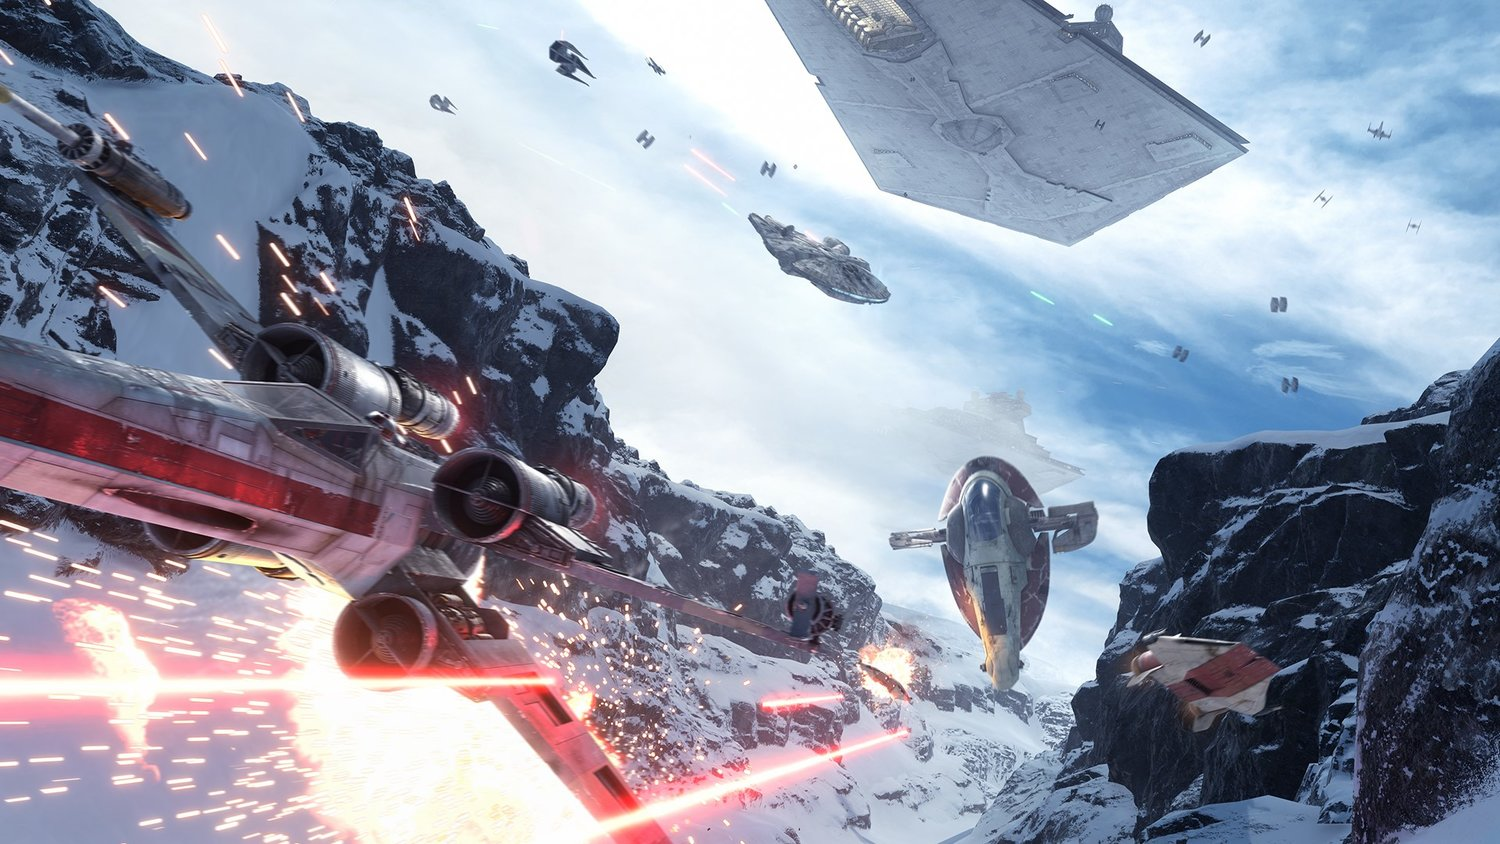 STAR WARS: BATTLEFRONT 2 Will Feature Multiple Eras and a Single Player Campaign